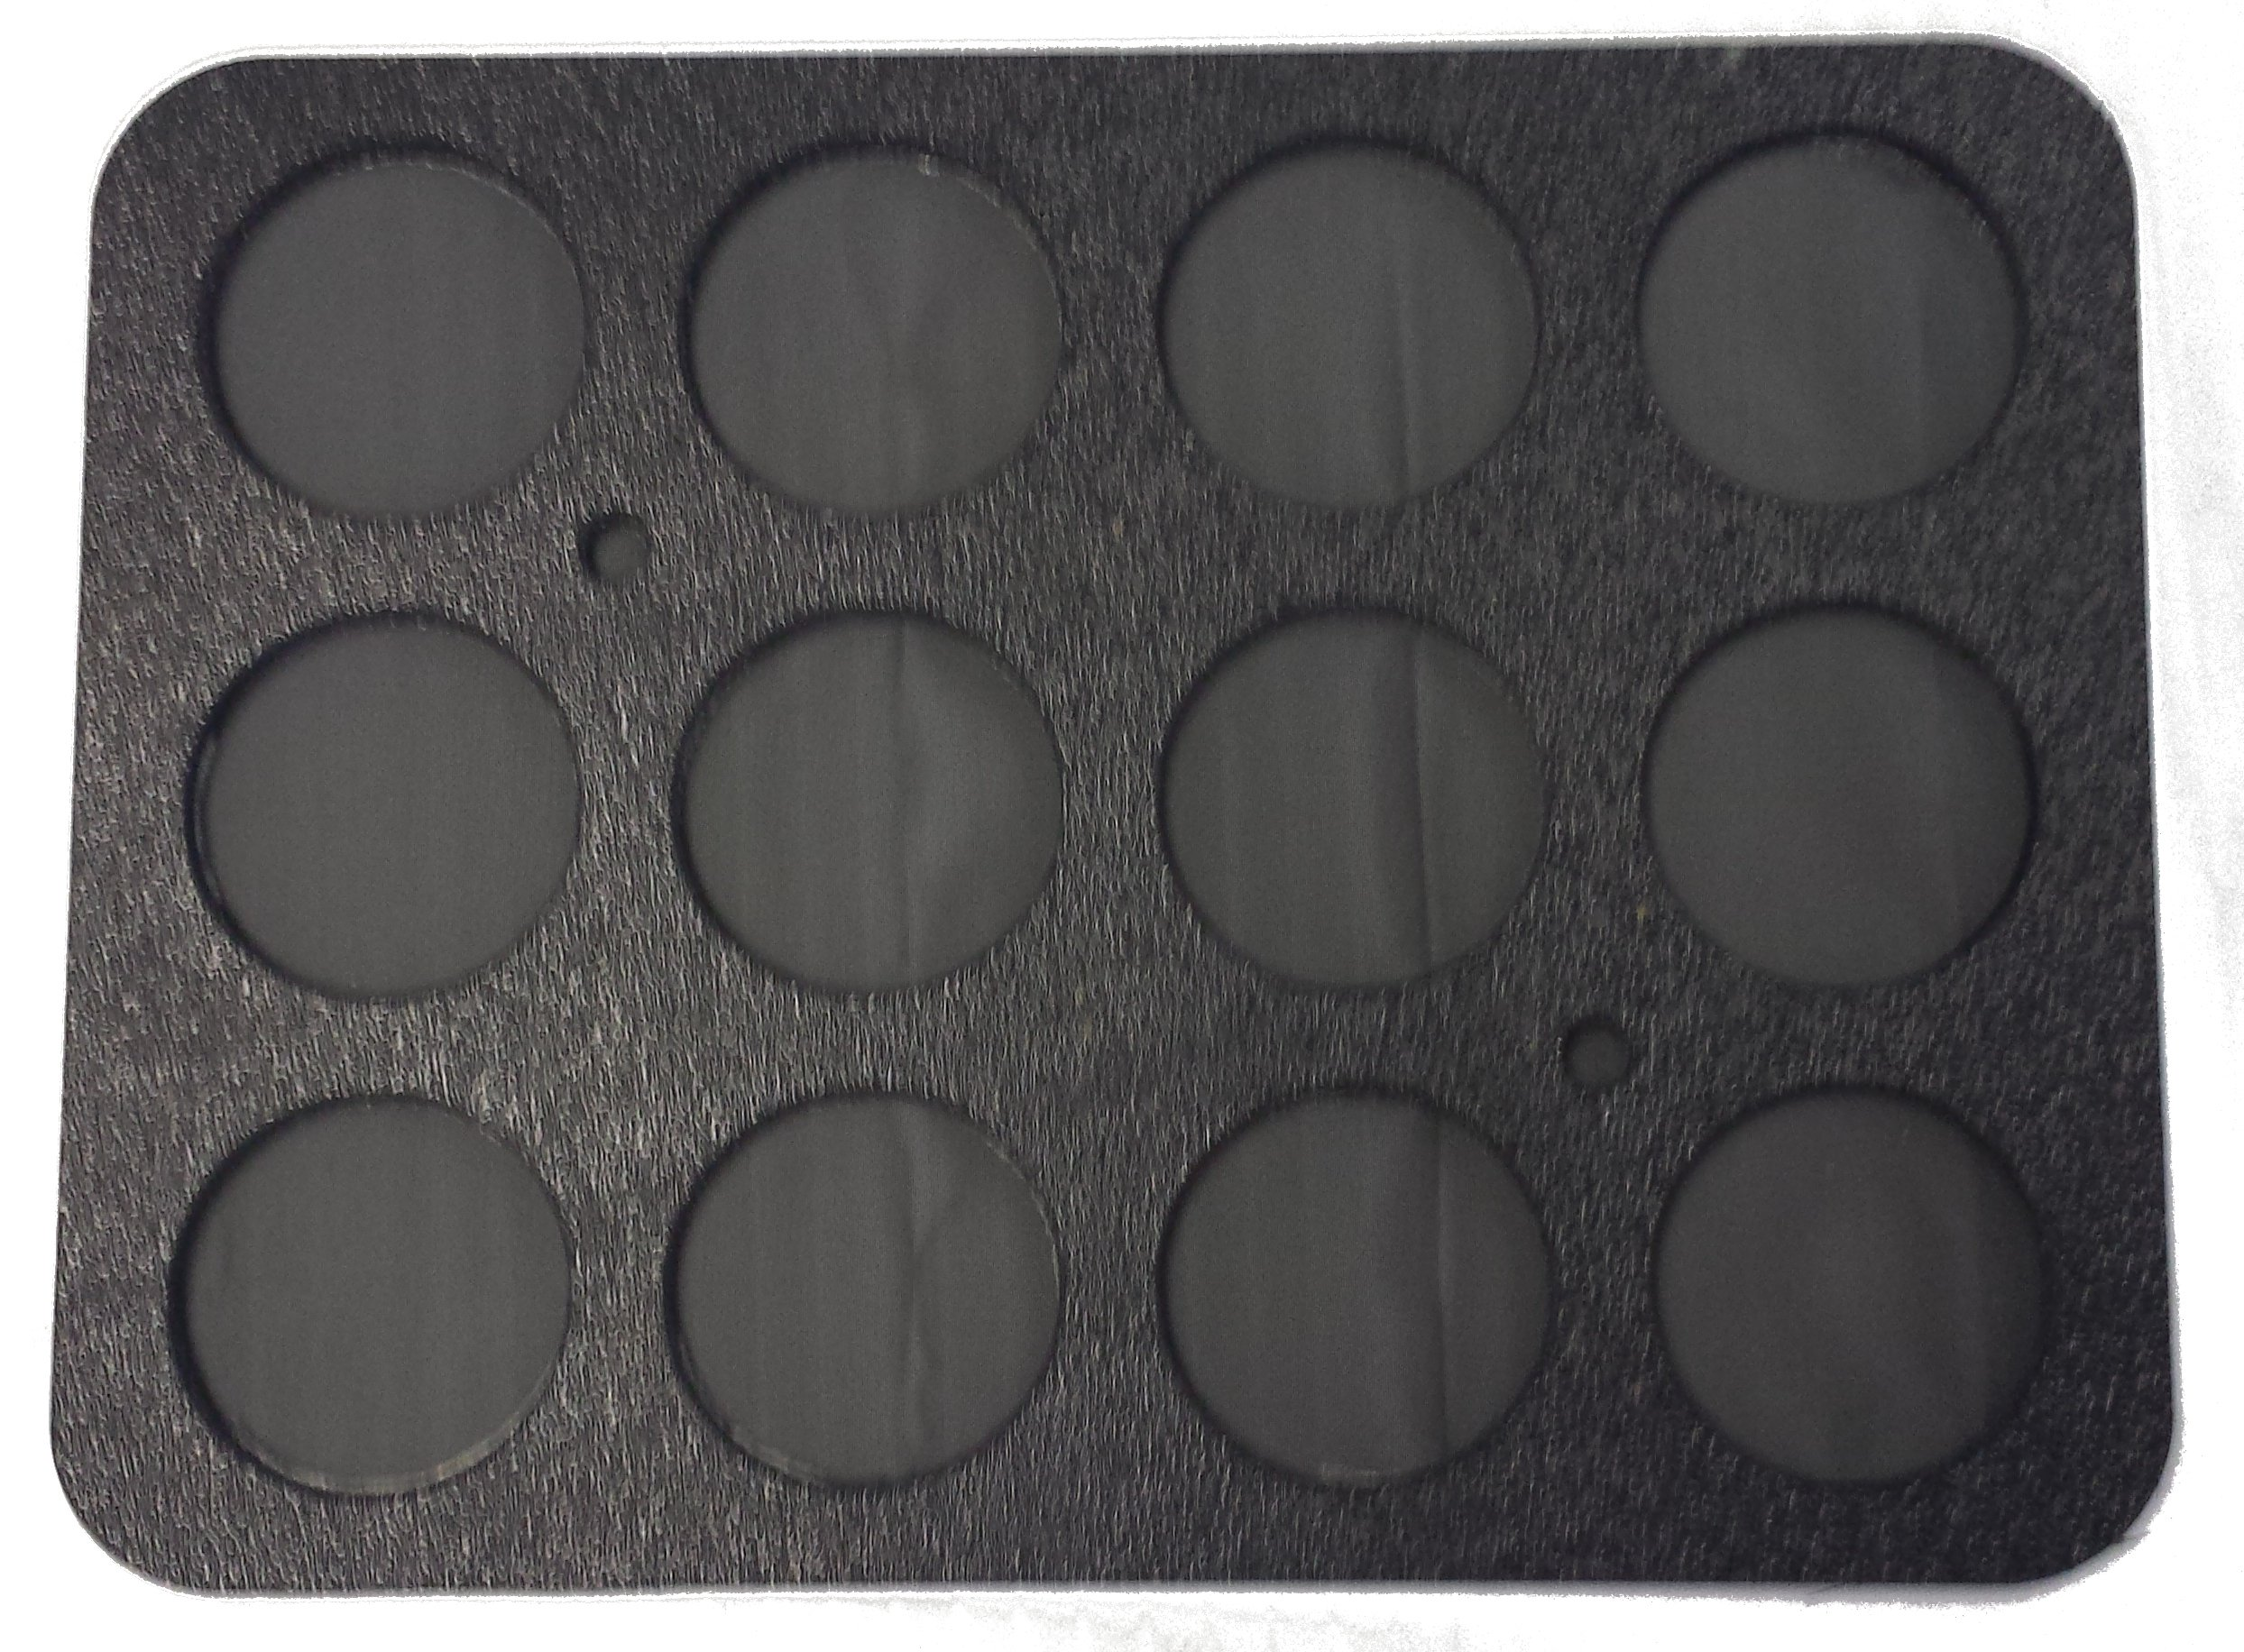 Freedom Air Filters FAFP122813 Black Pre-Filter for Freightliner FLD 120 and Classic Cab